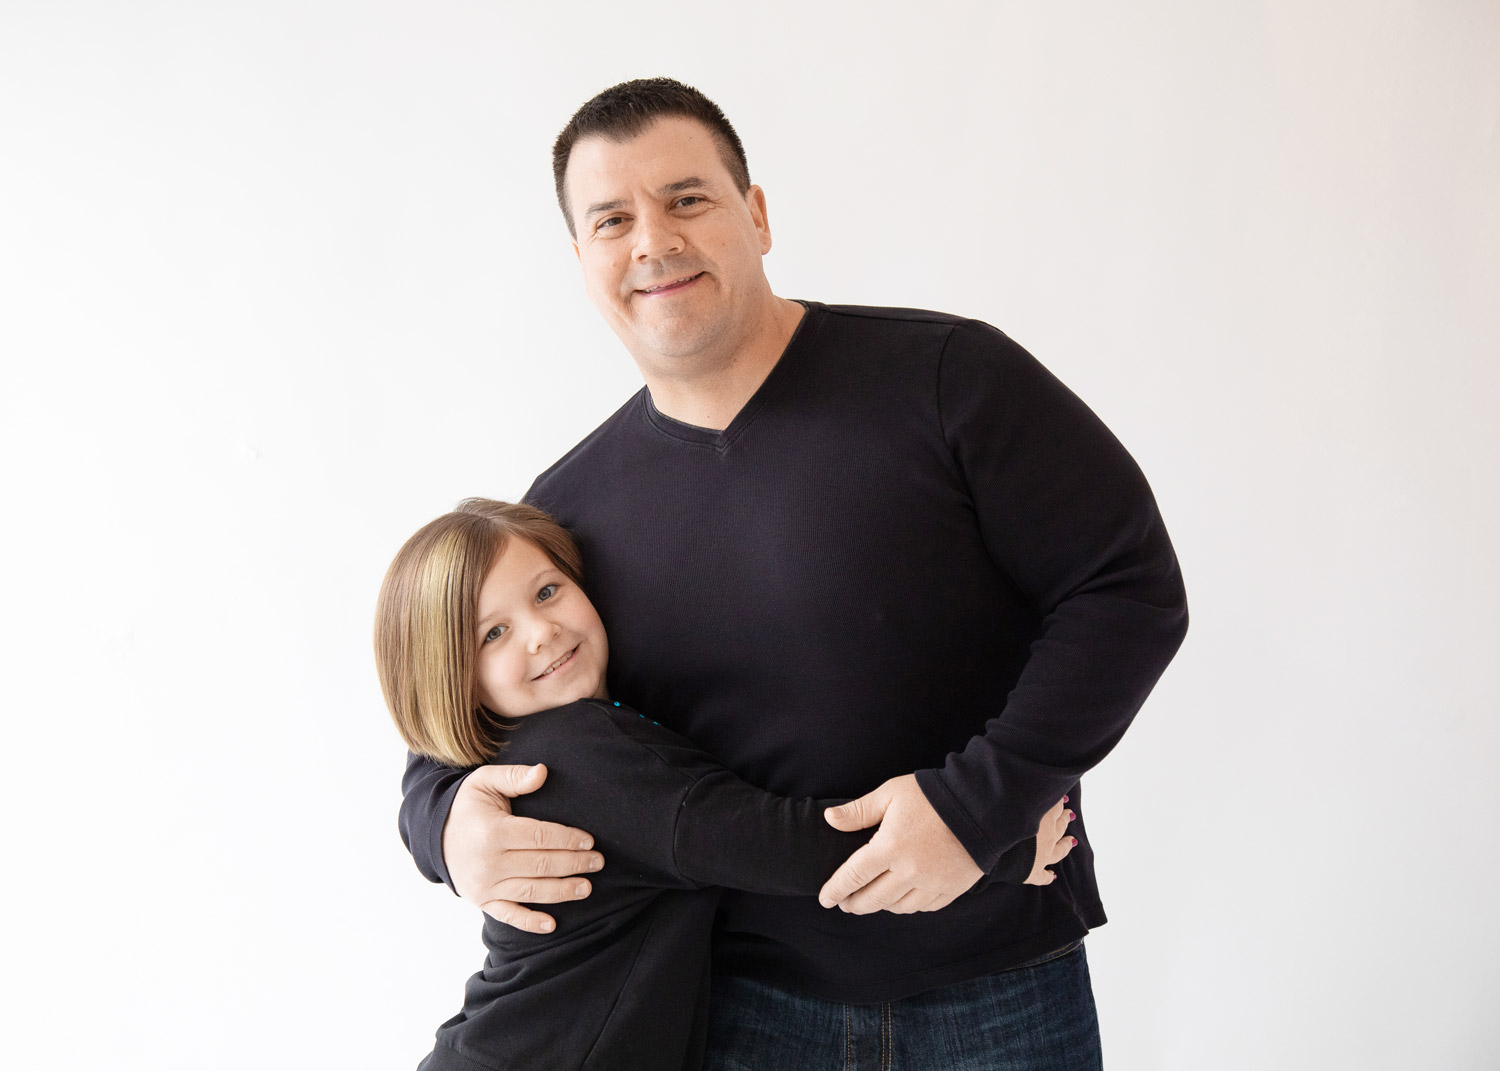 houston family photography studio father daughter portrait